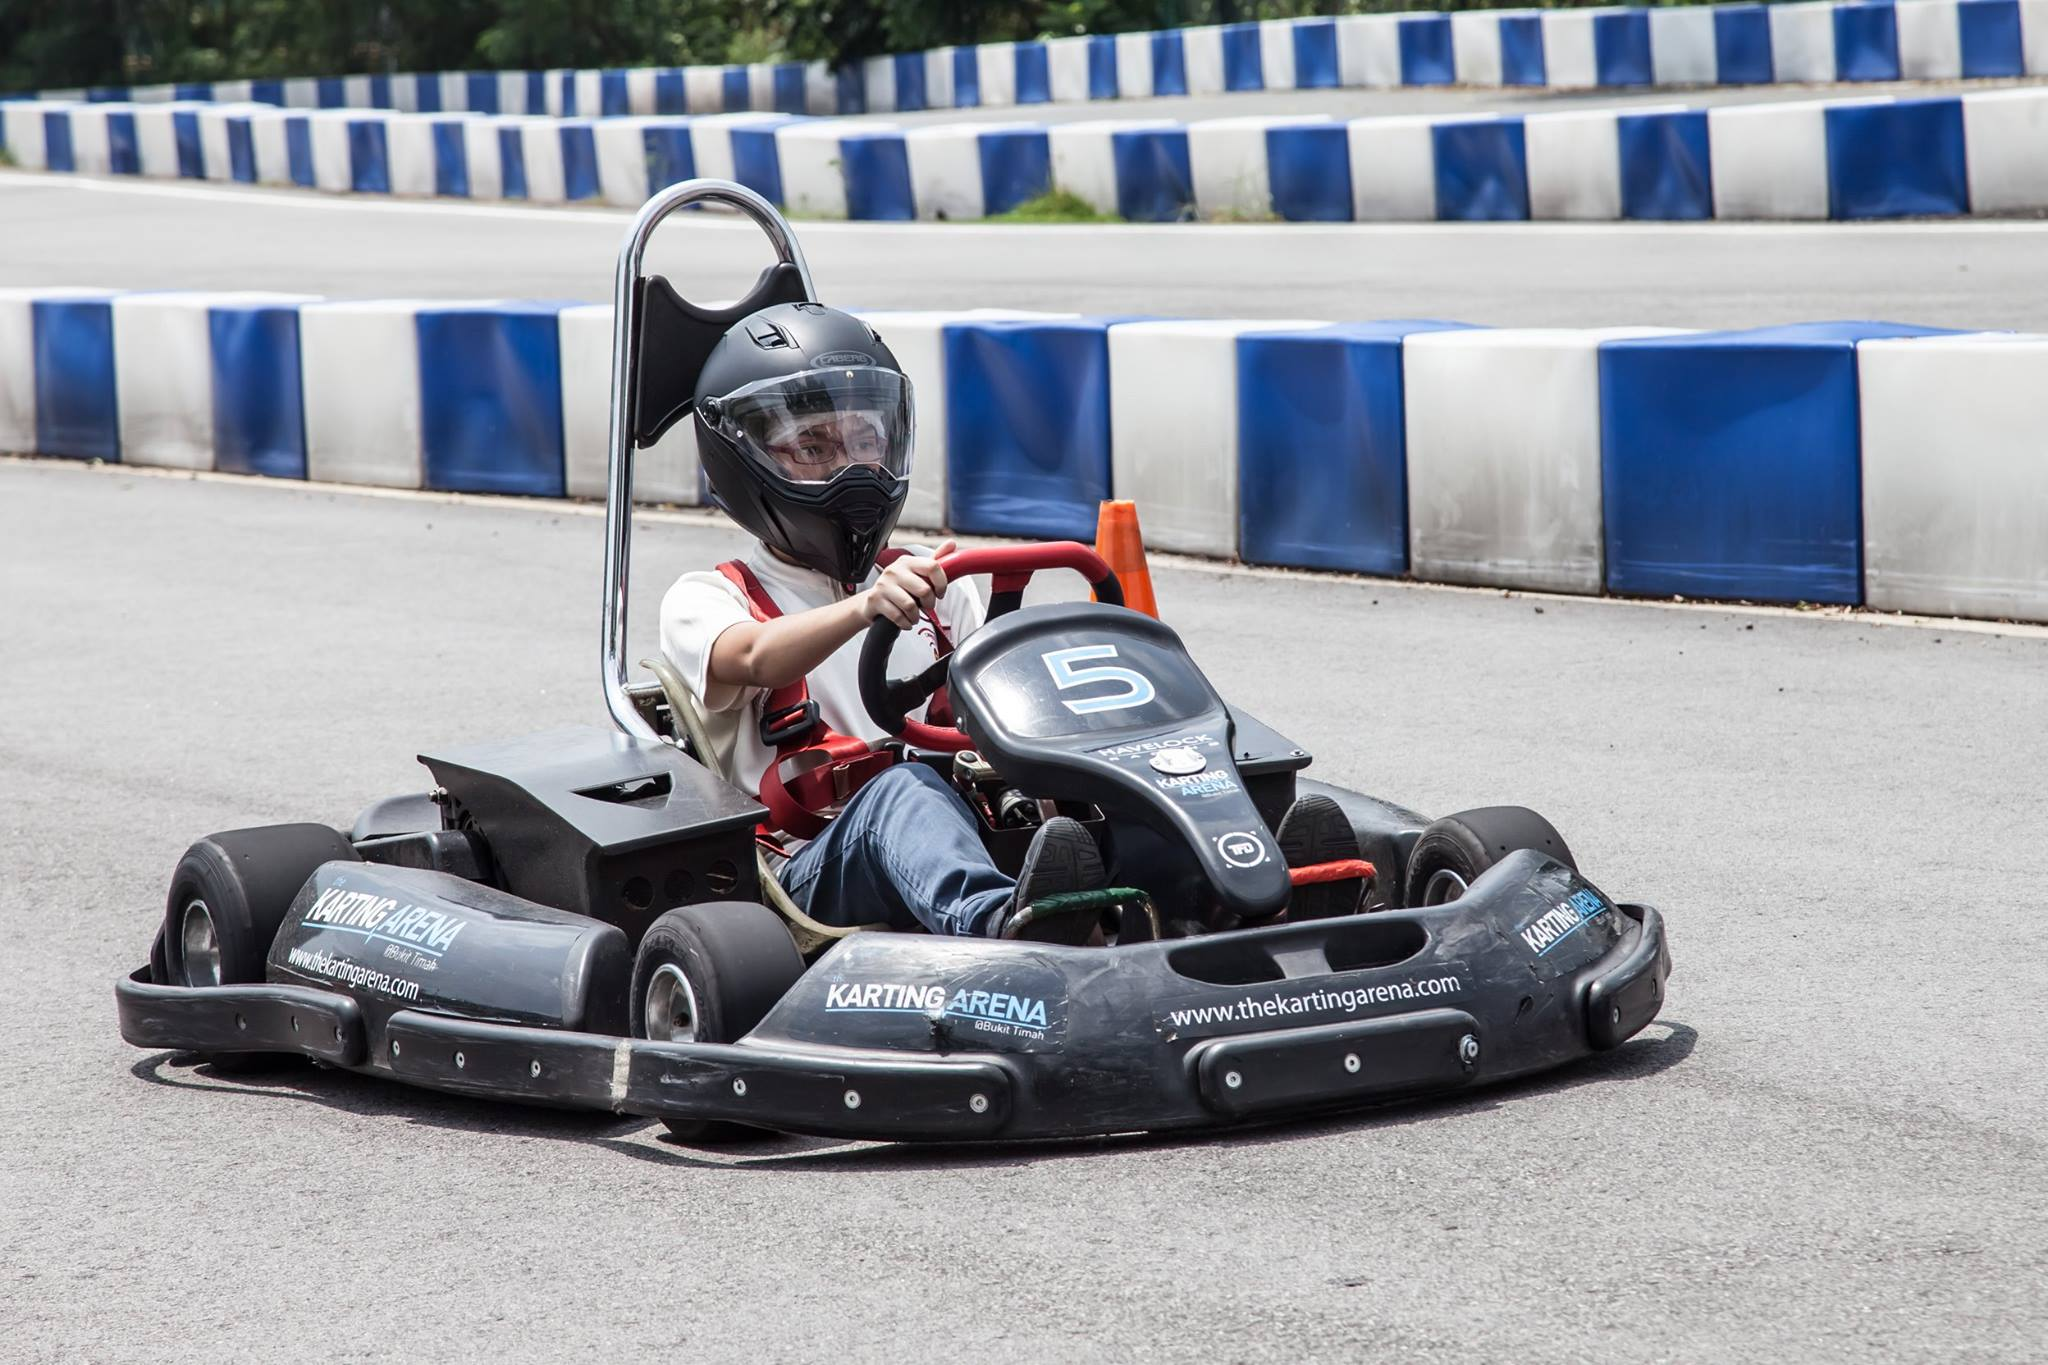 Fun Karting Session for 1 Child (Weekend)